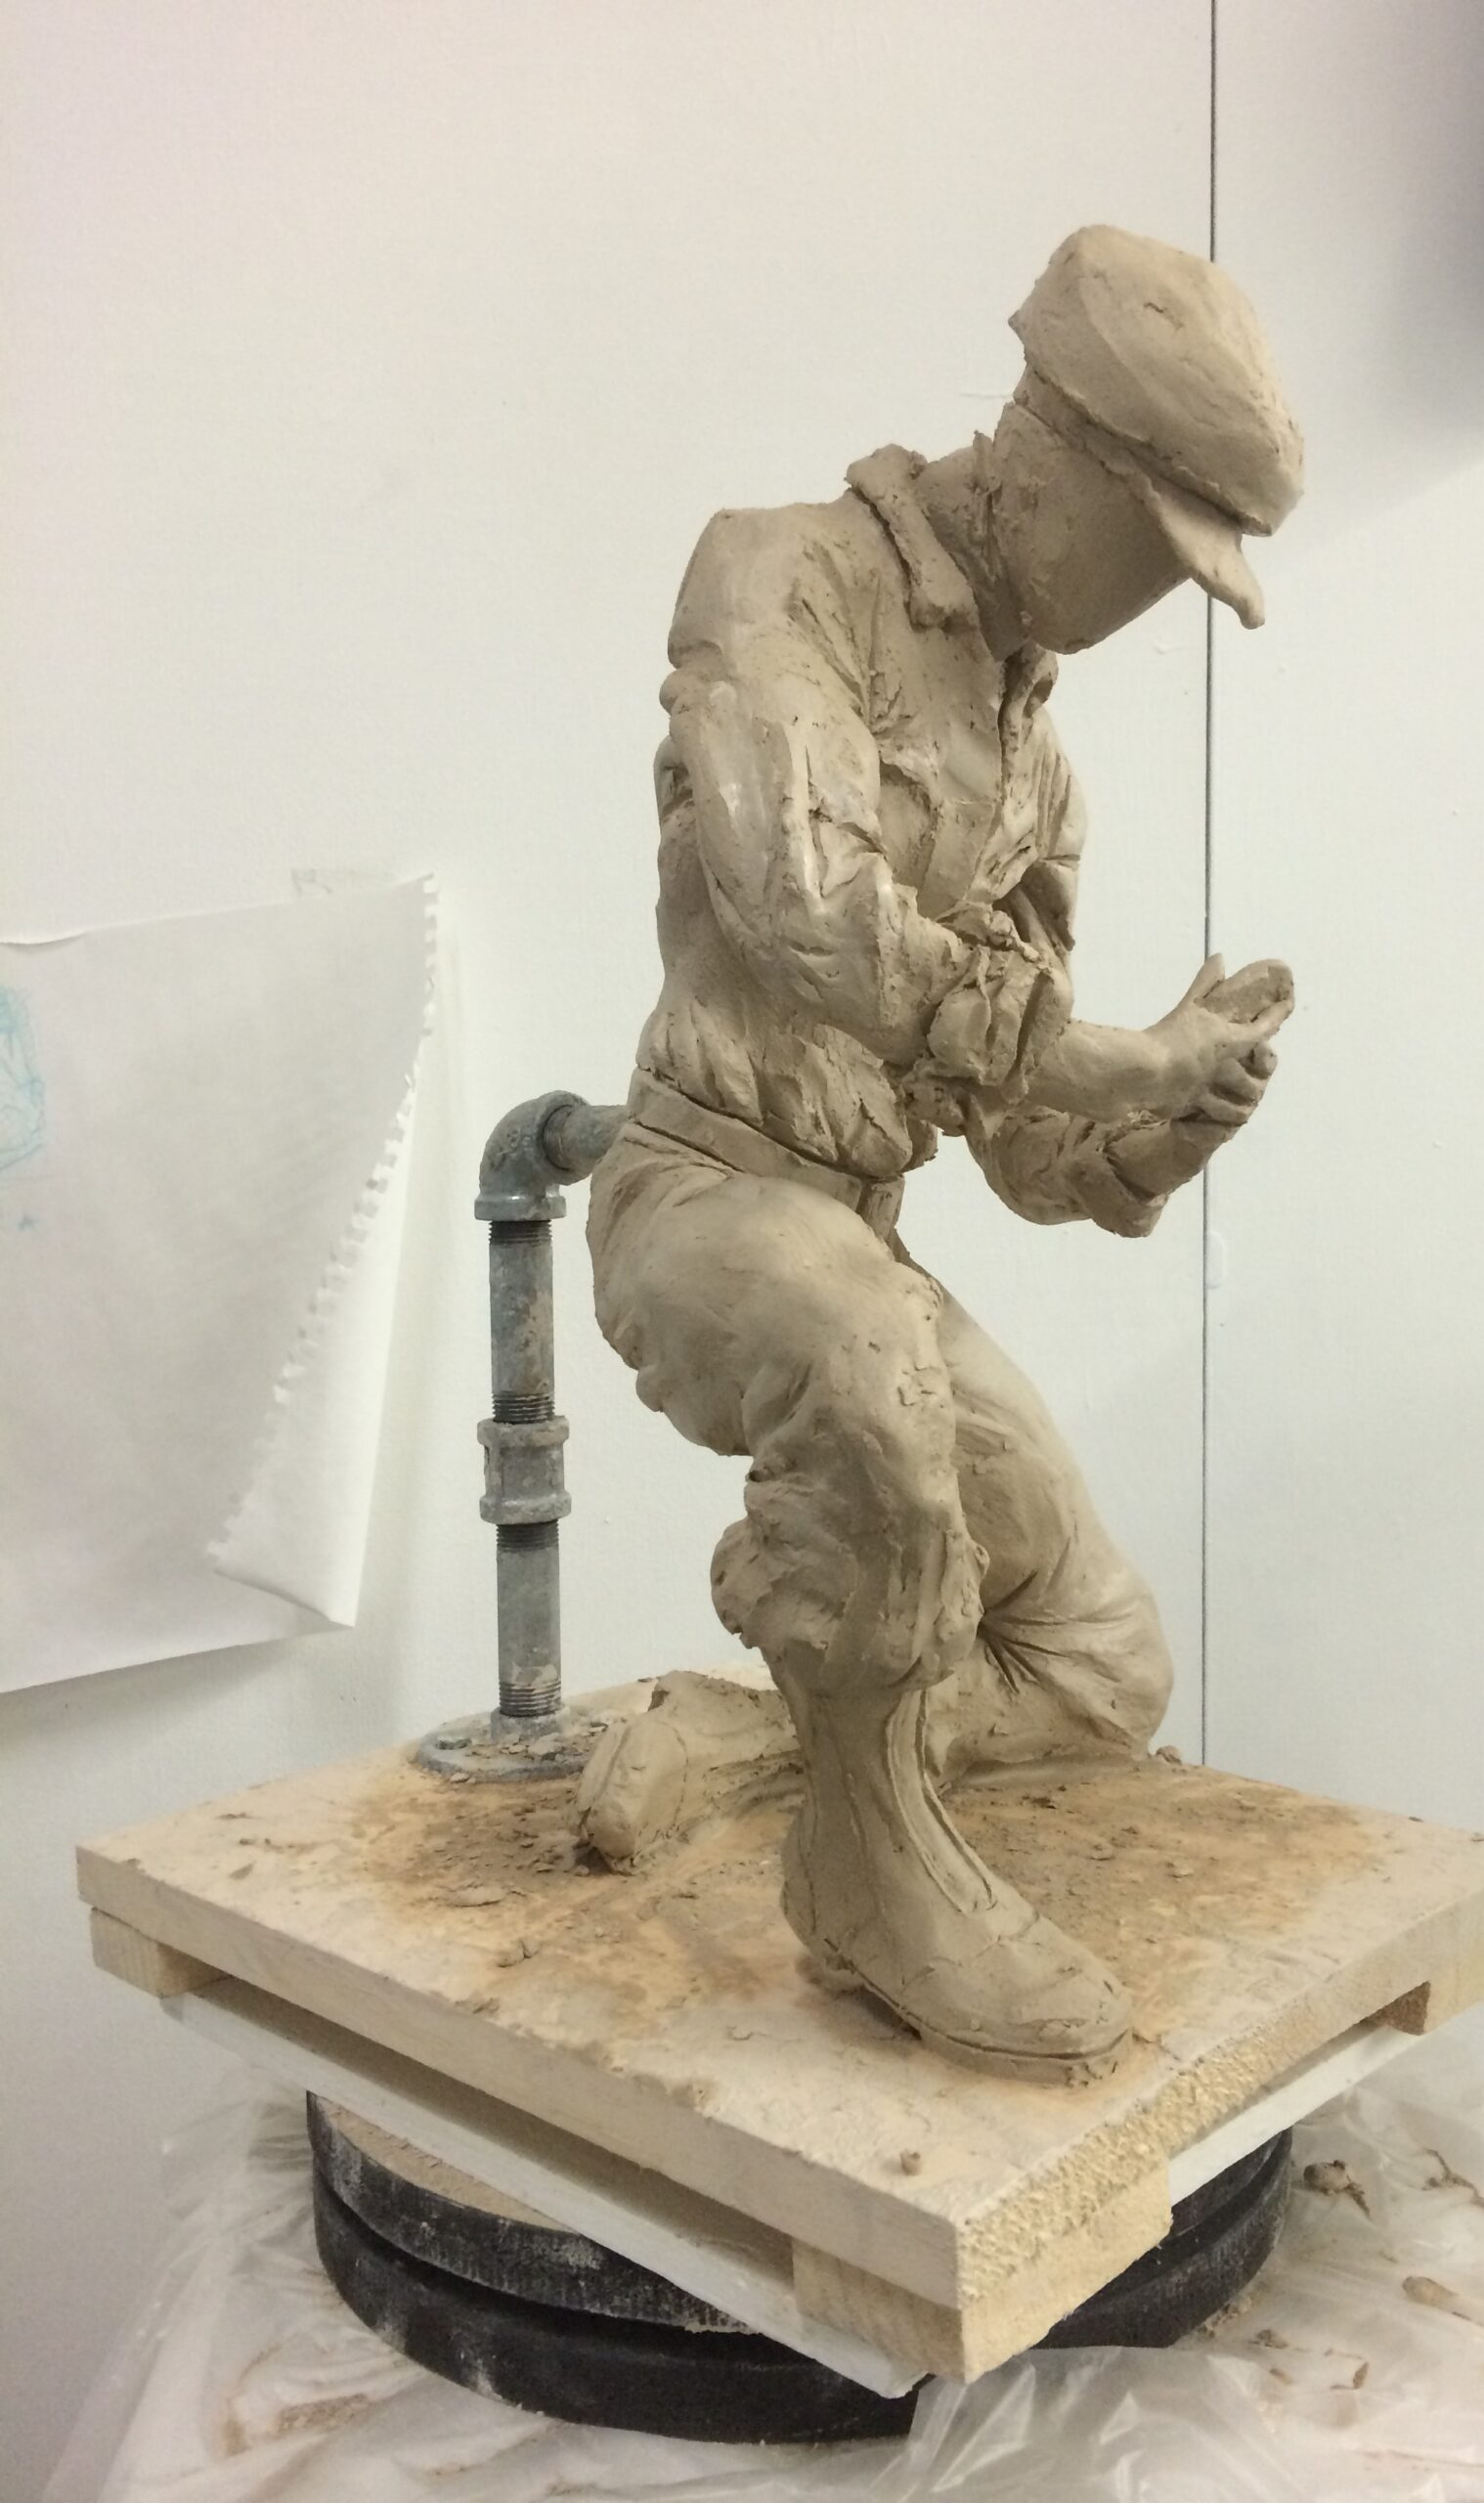 Sketching a spelunker using clay - Adding folds to Clothing step.